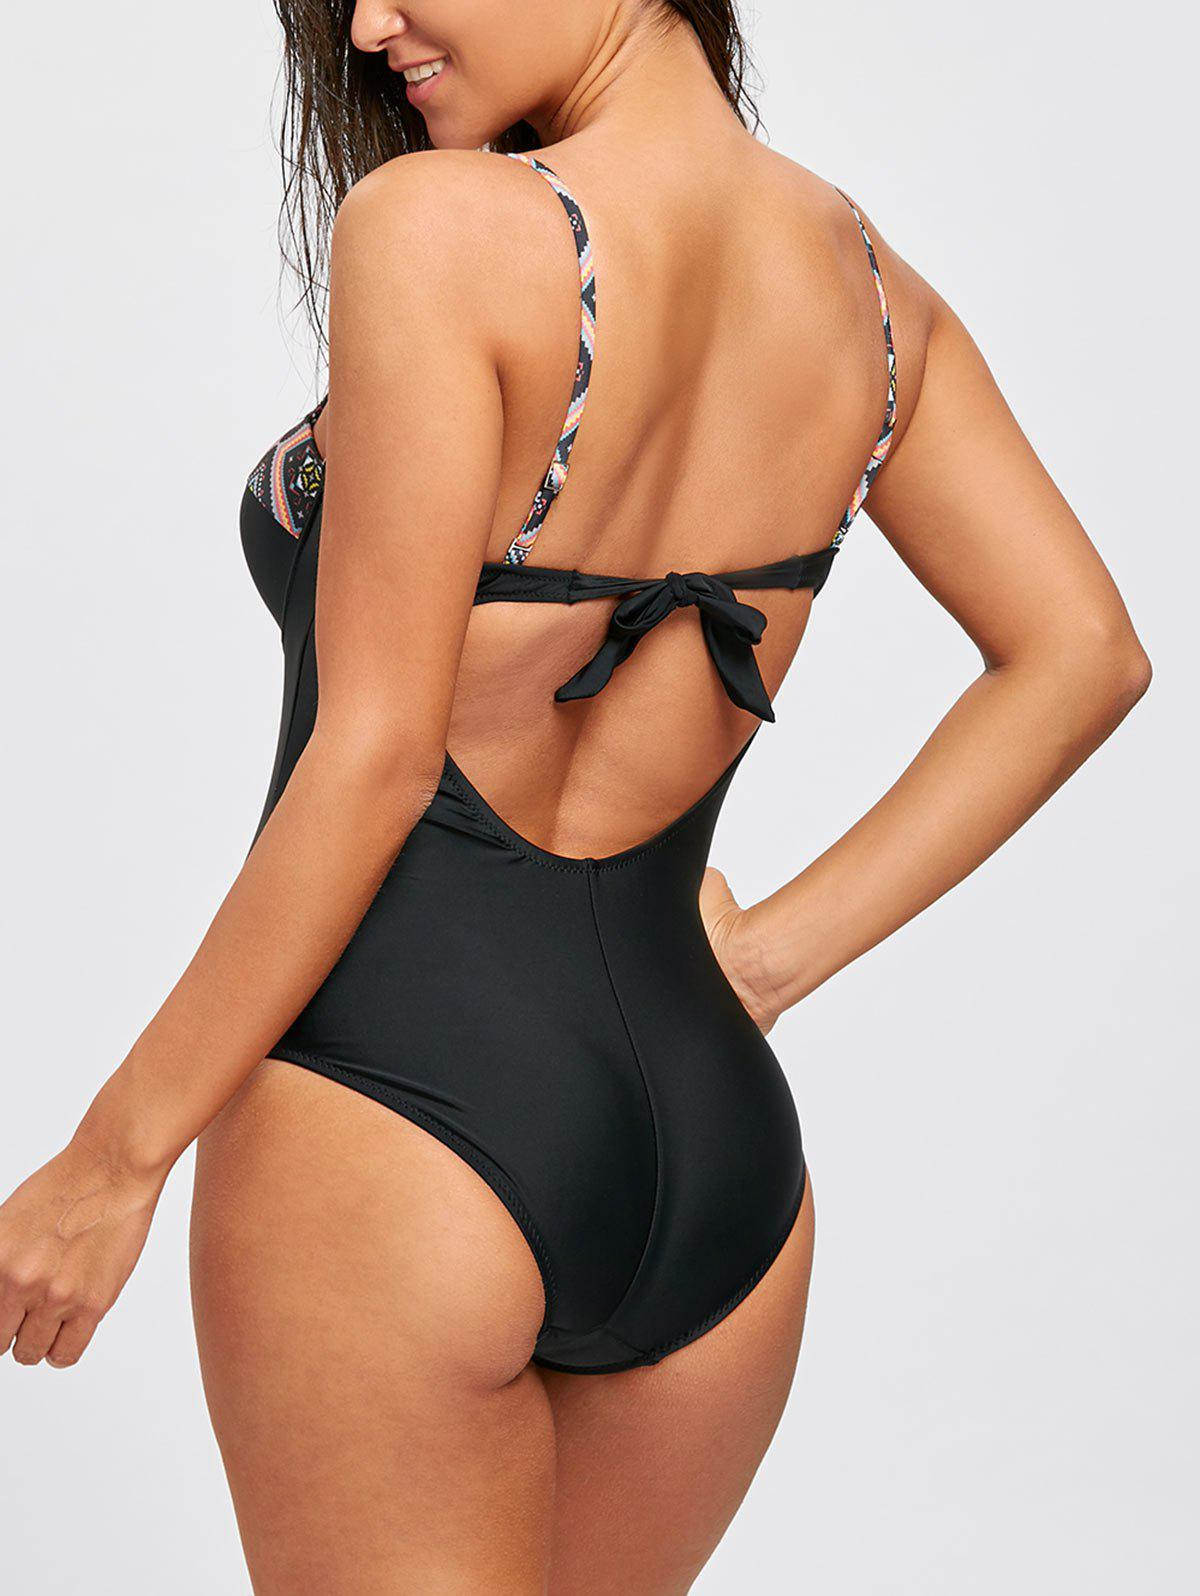 Backless Spaghetti Strap Underwire Swimsuit - BLACK L